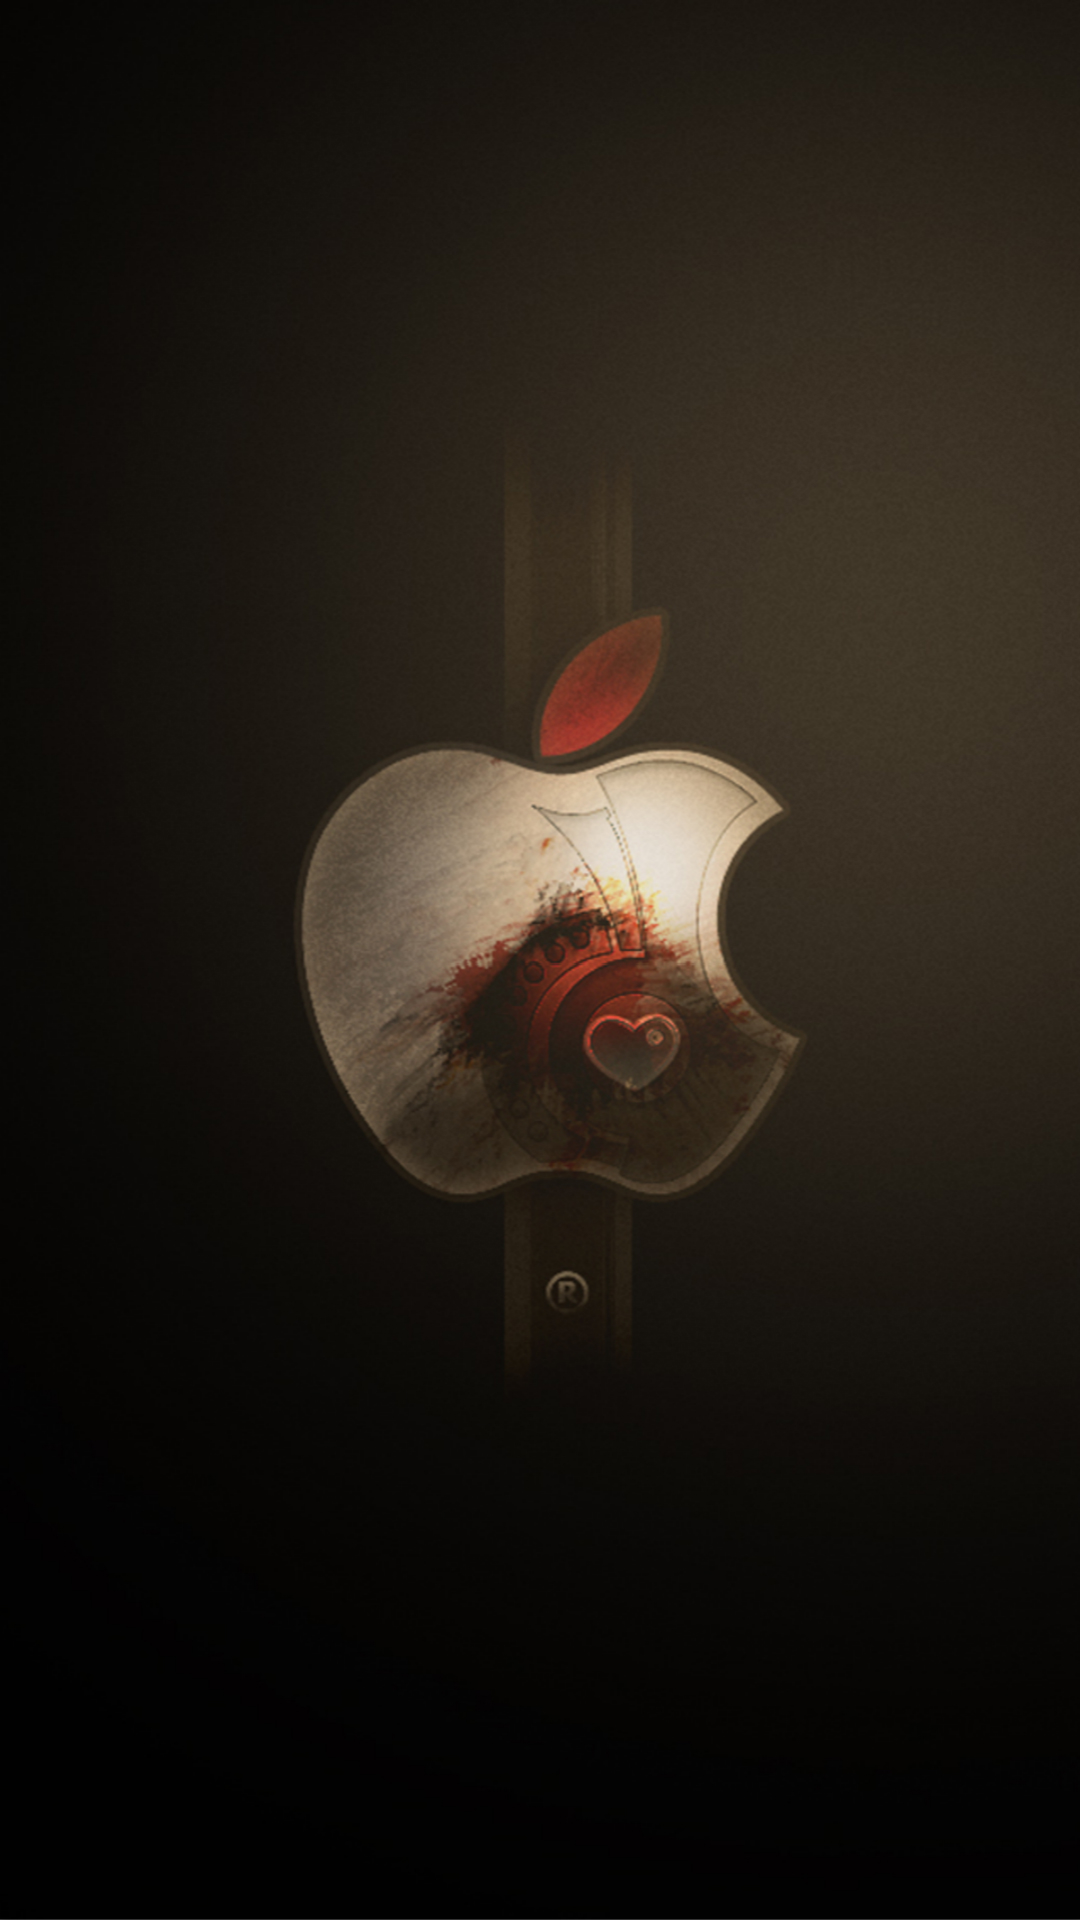 apple iphone wallpapers (30)